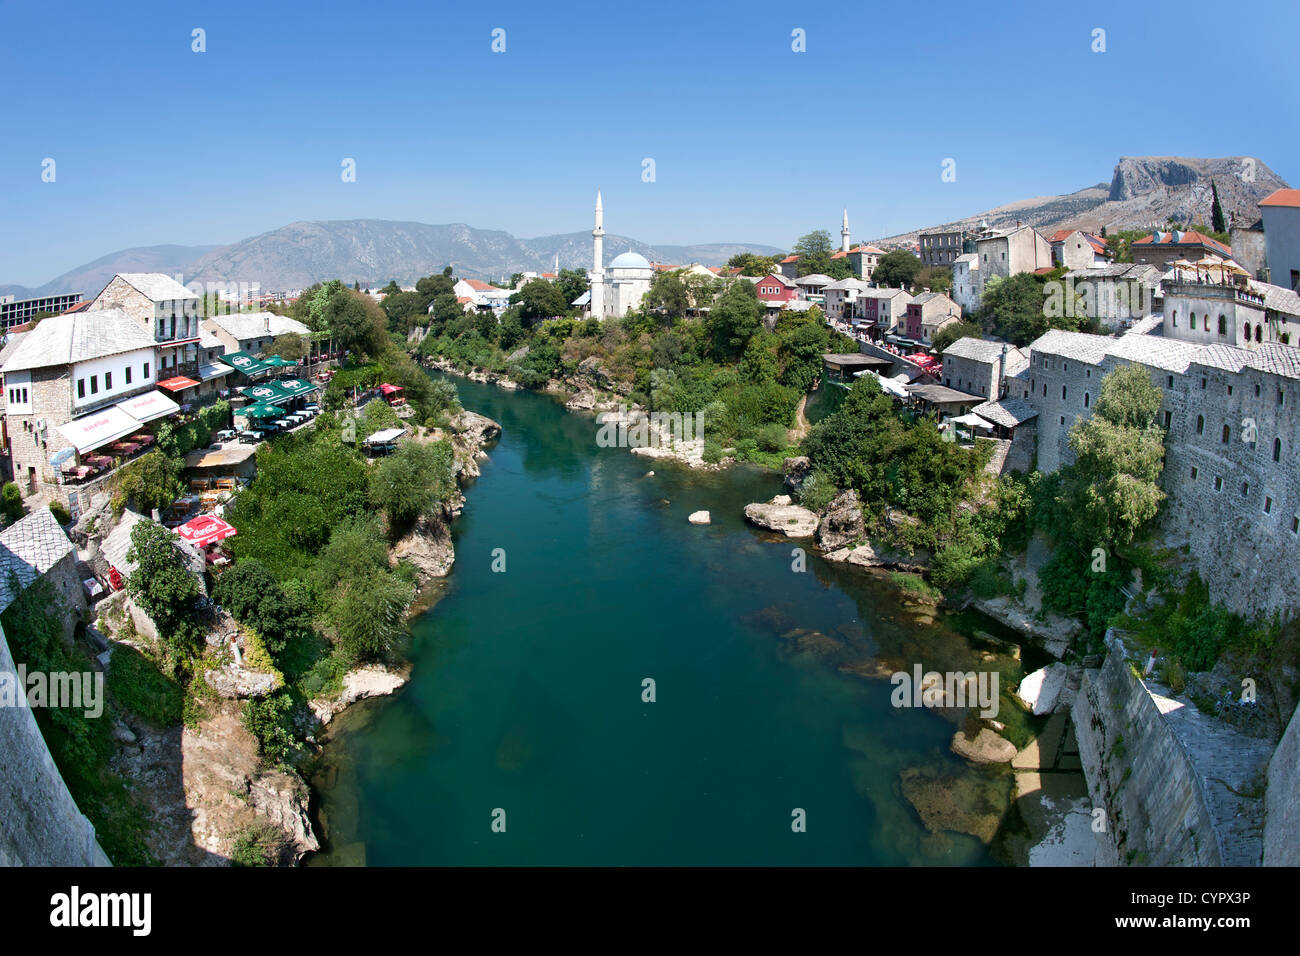 Mostar and the Neretva River in Bosnia and Herzegovina. Seen from the Old Bridge. - Stock Image